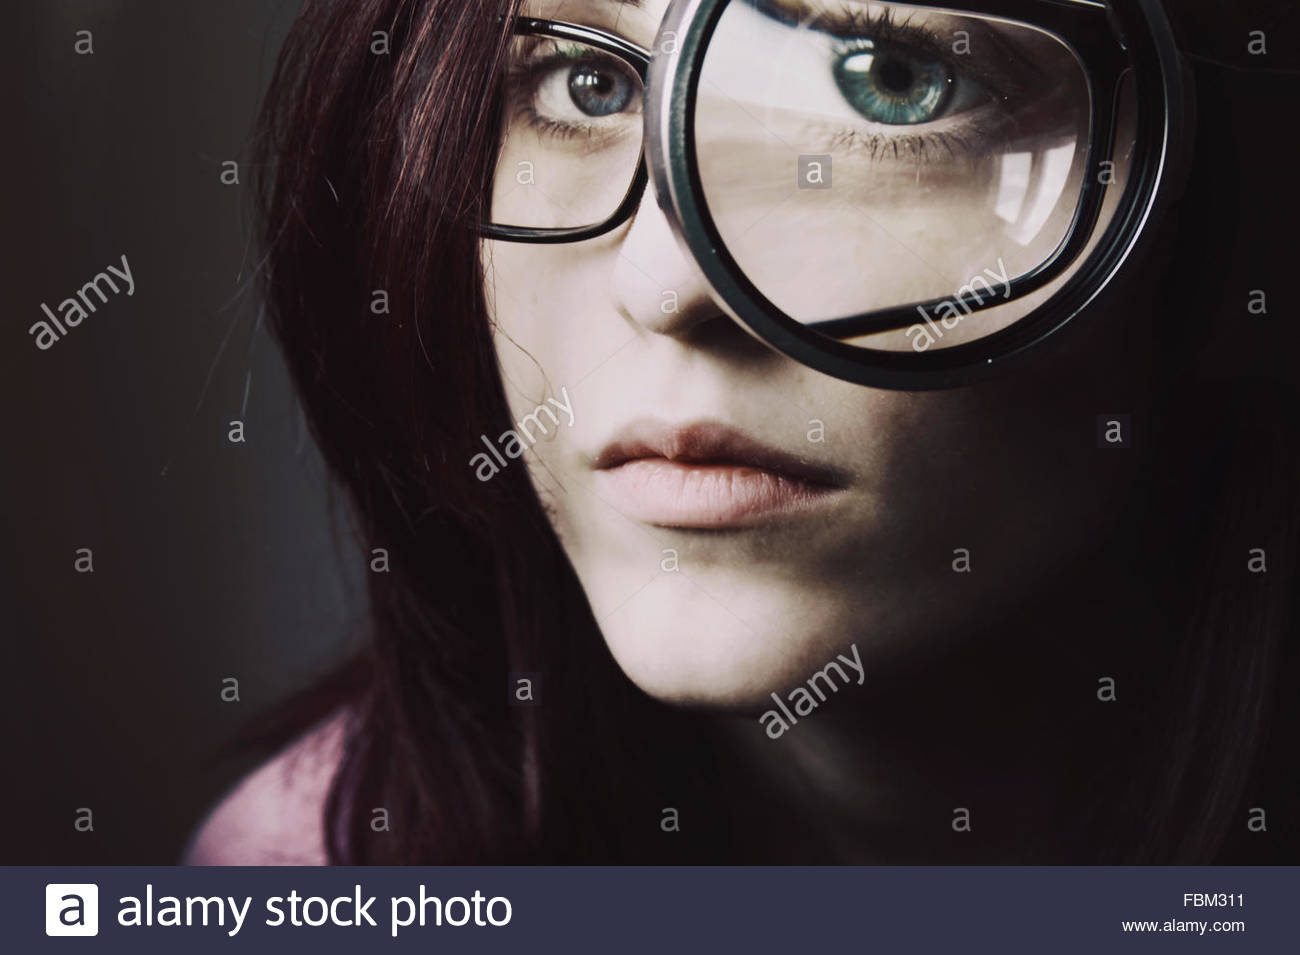 Woman Looking Through Magnifying Glass - Stock Image